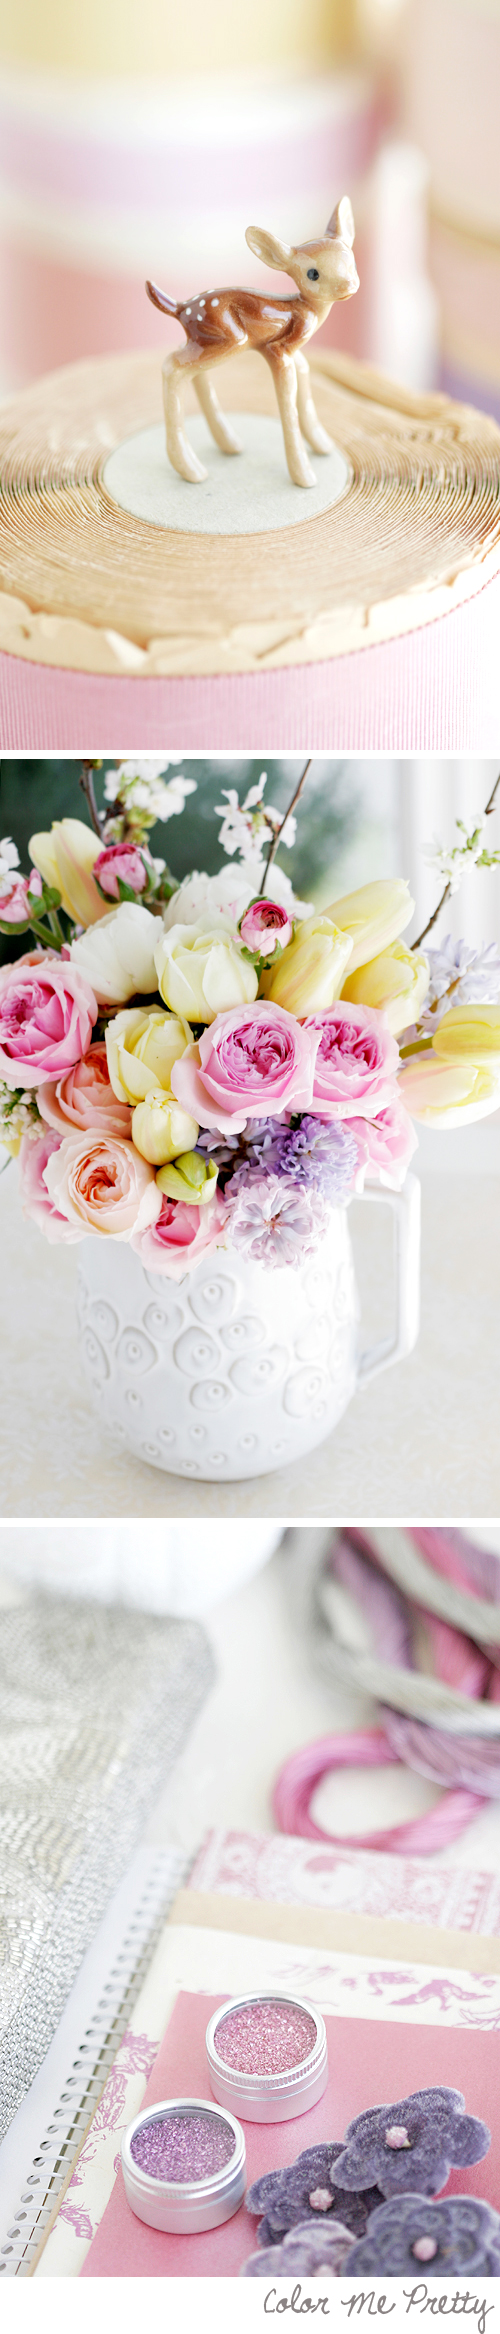 Soft Yellows, Pinks and Lilac Tones